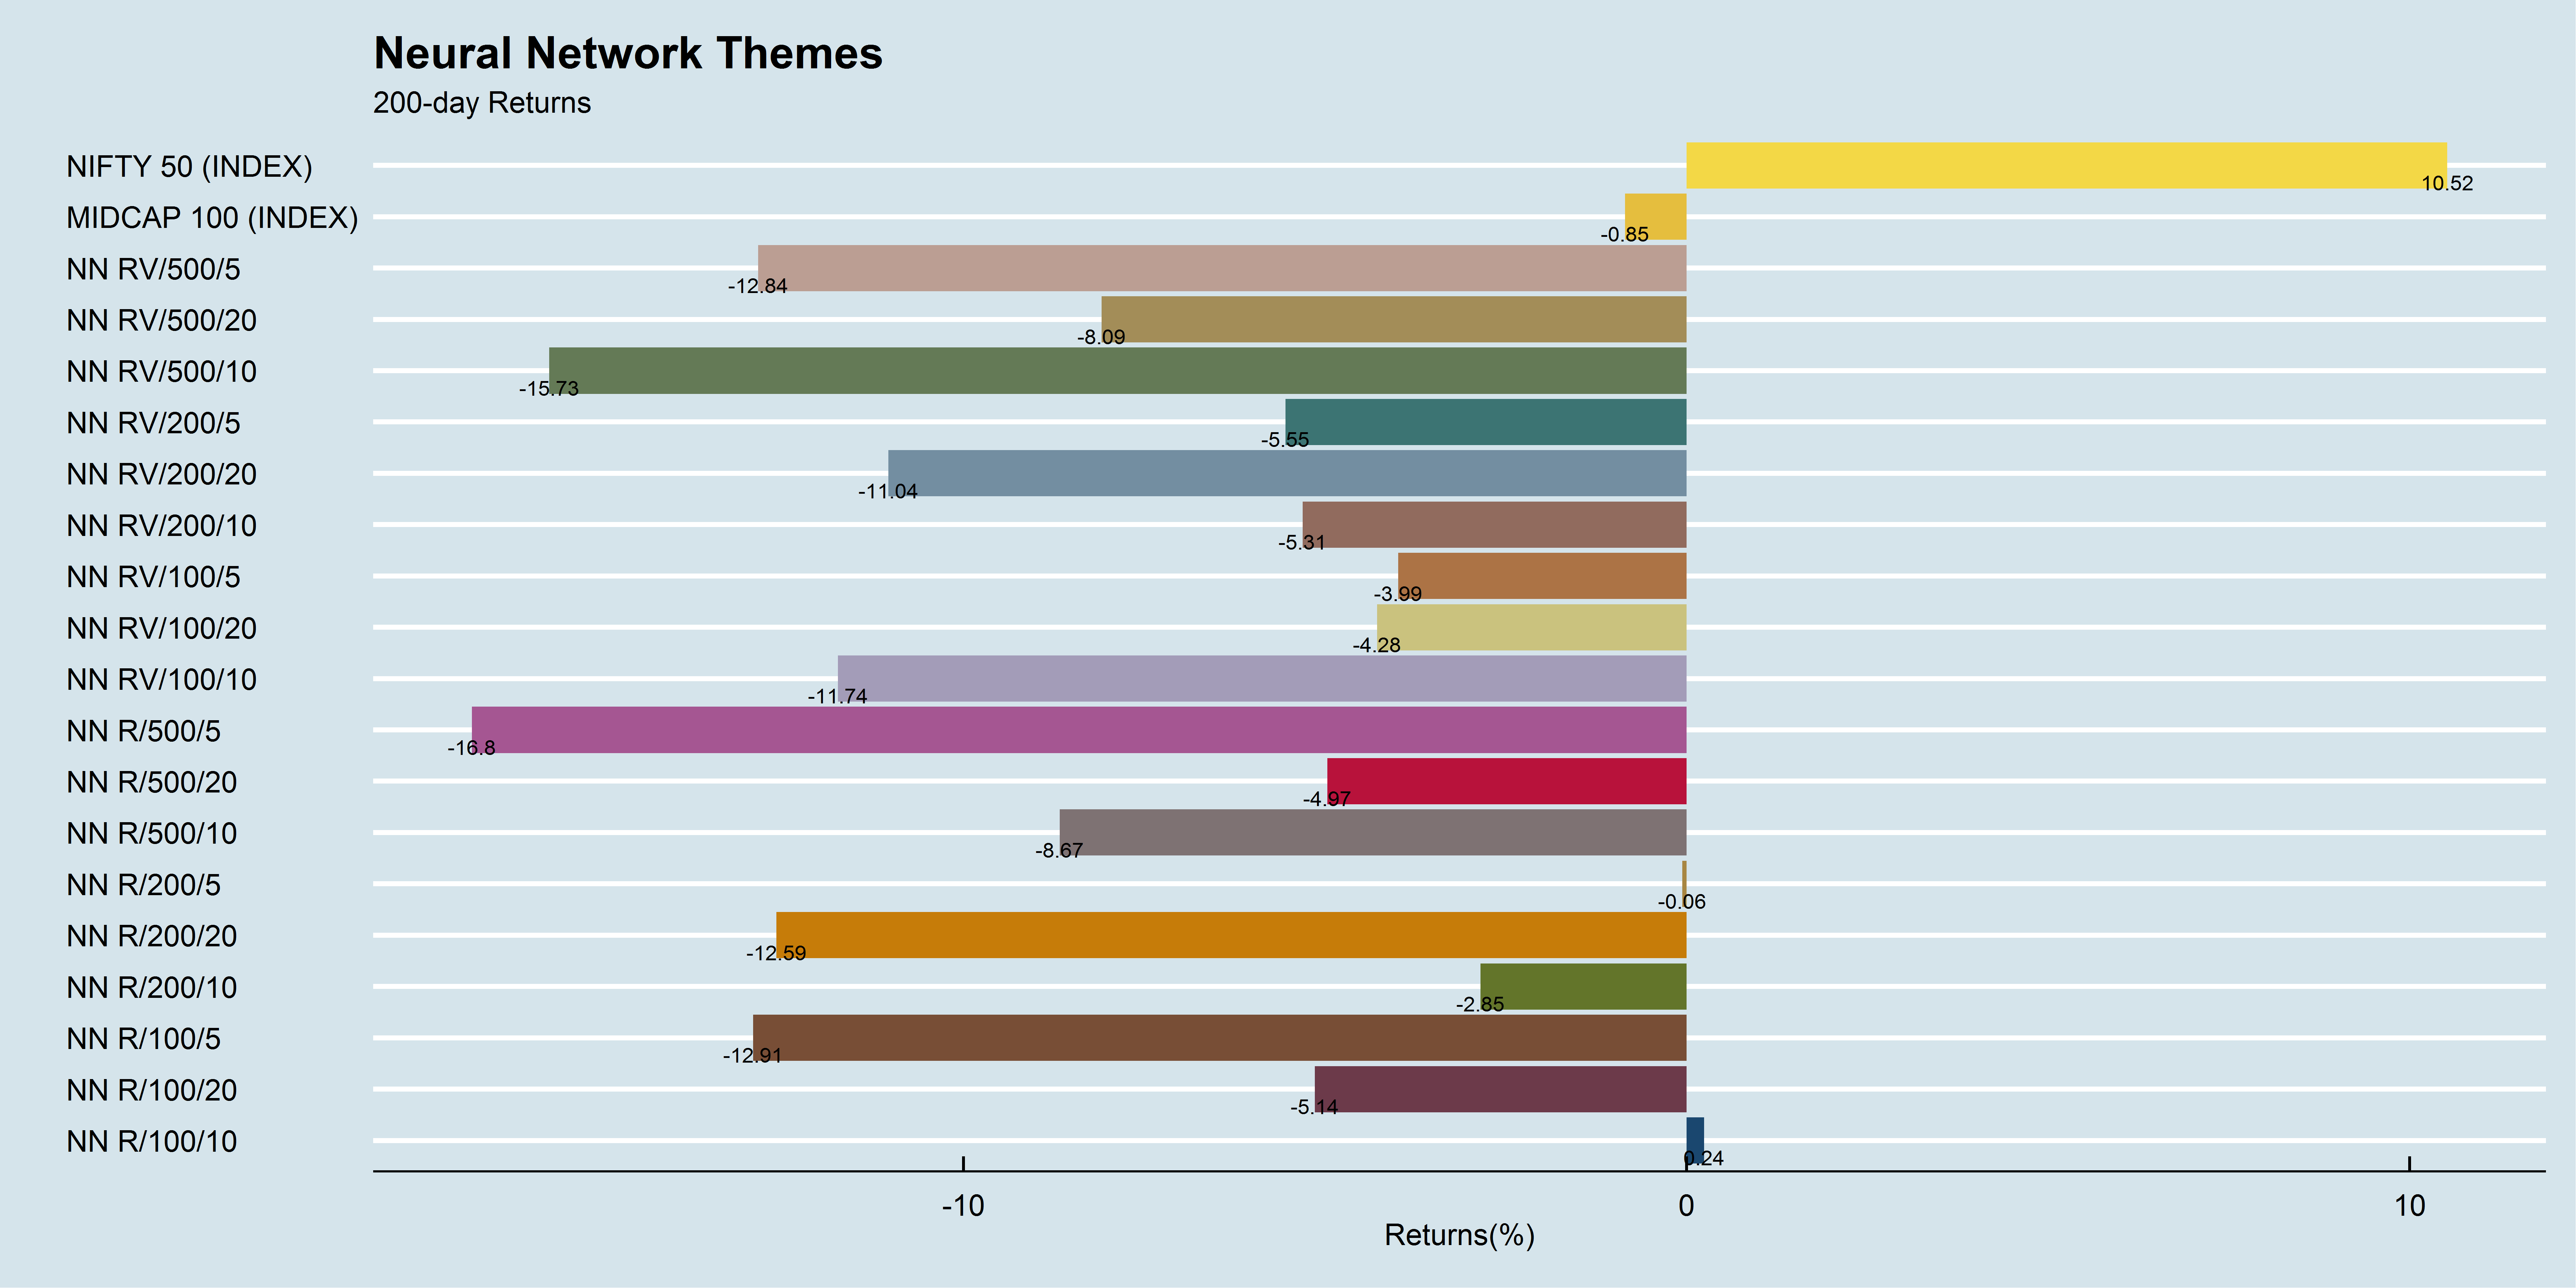 Neural Network Themes 200-day performance